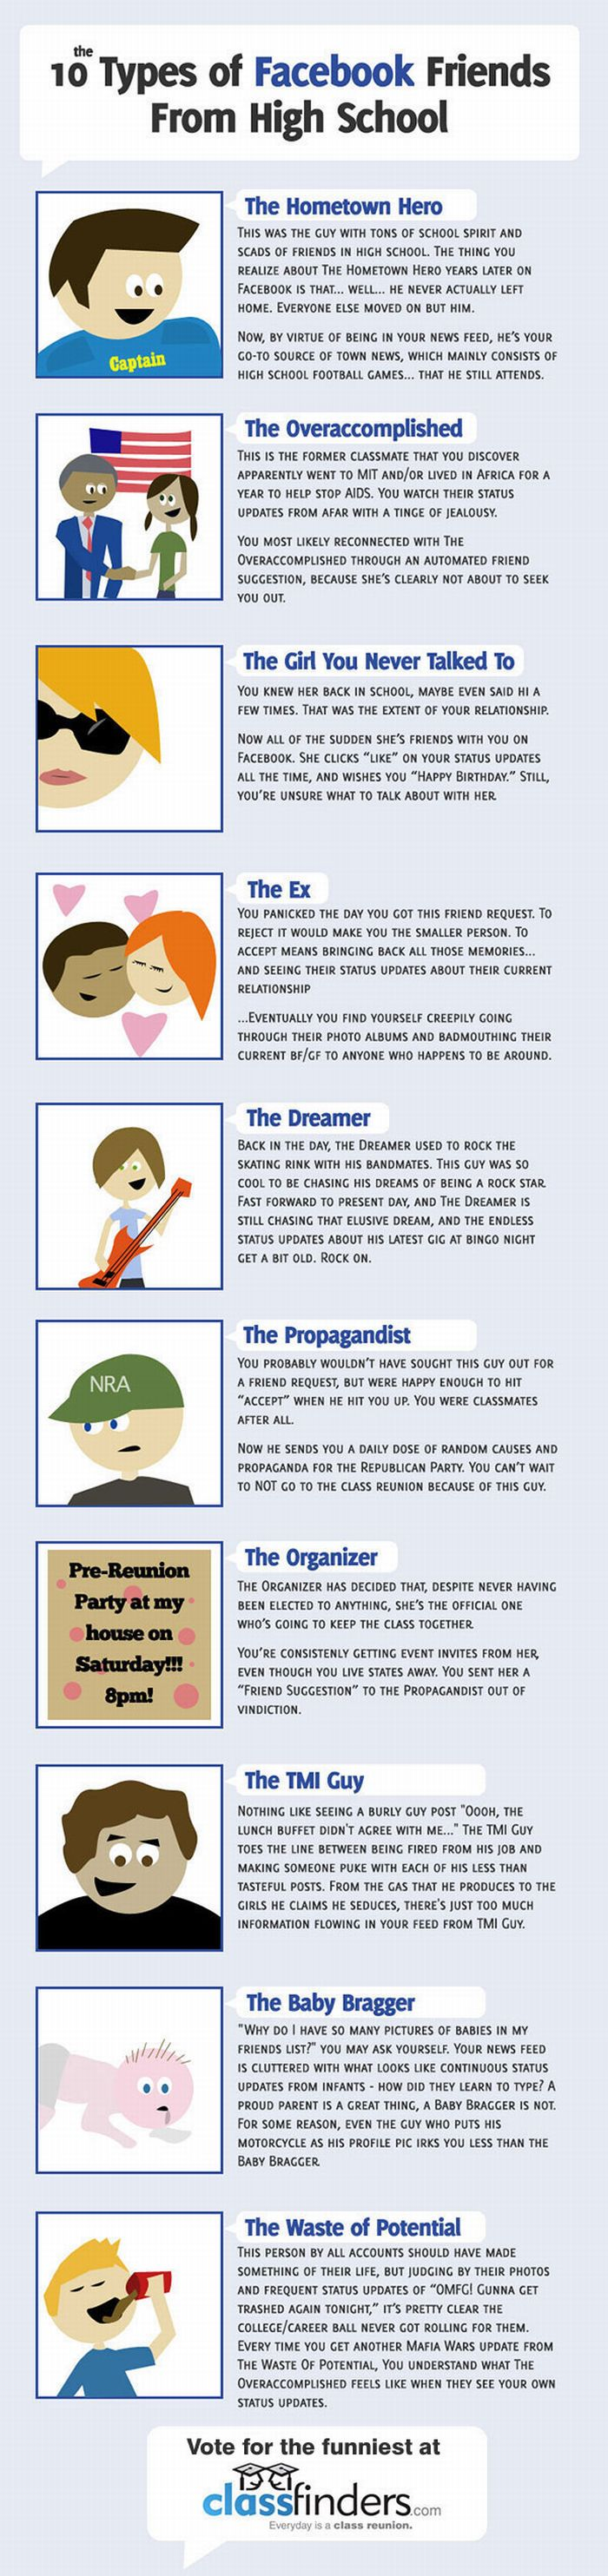 10 Types of Facebook Friends from High School (1 pic)